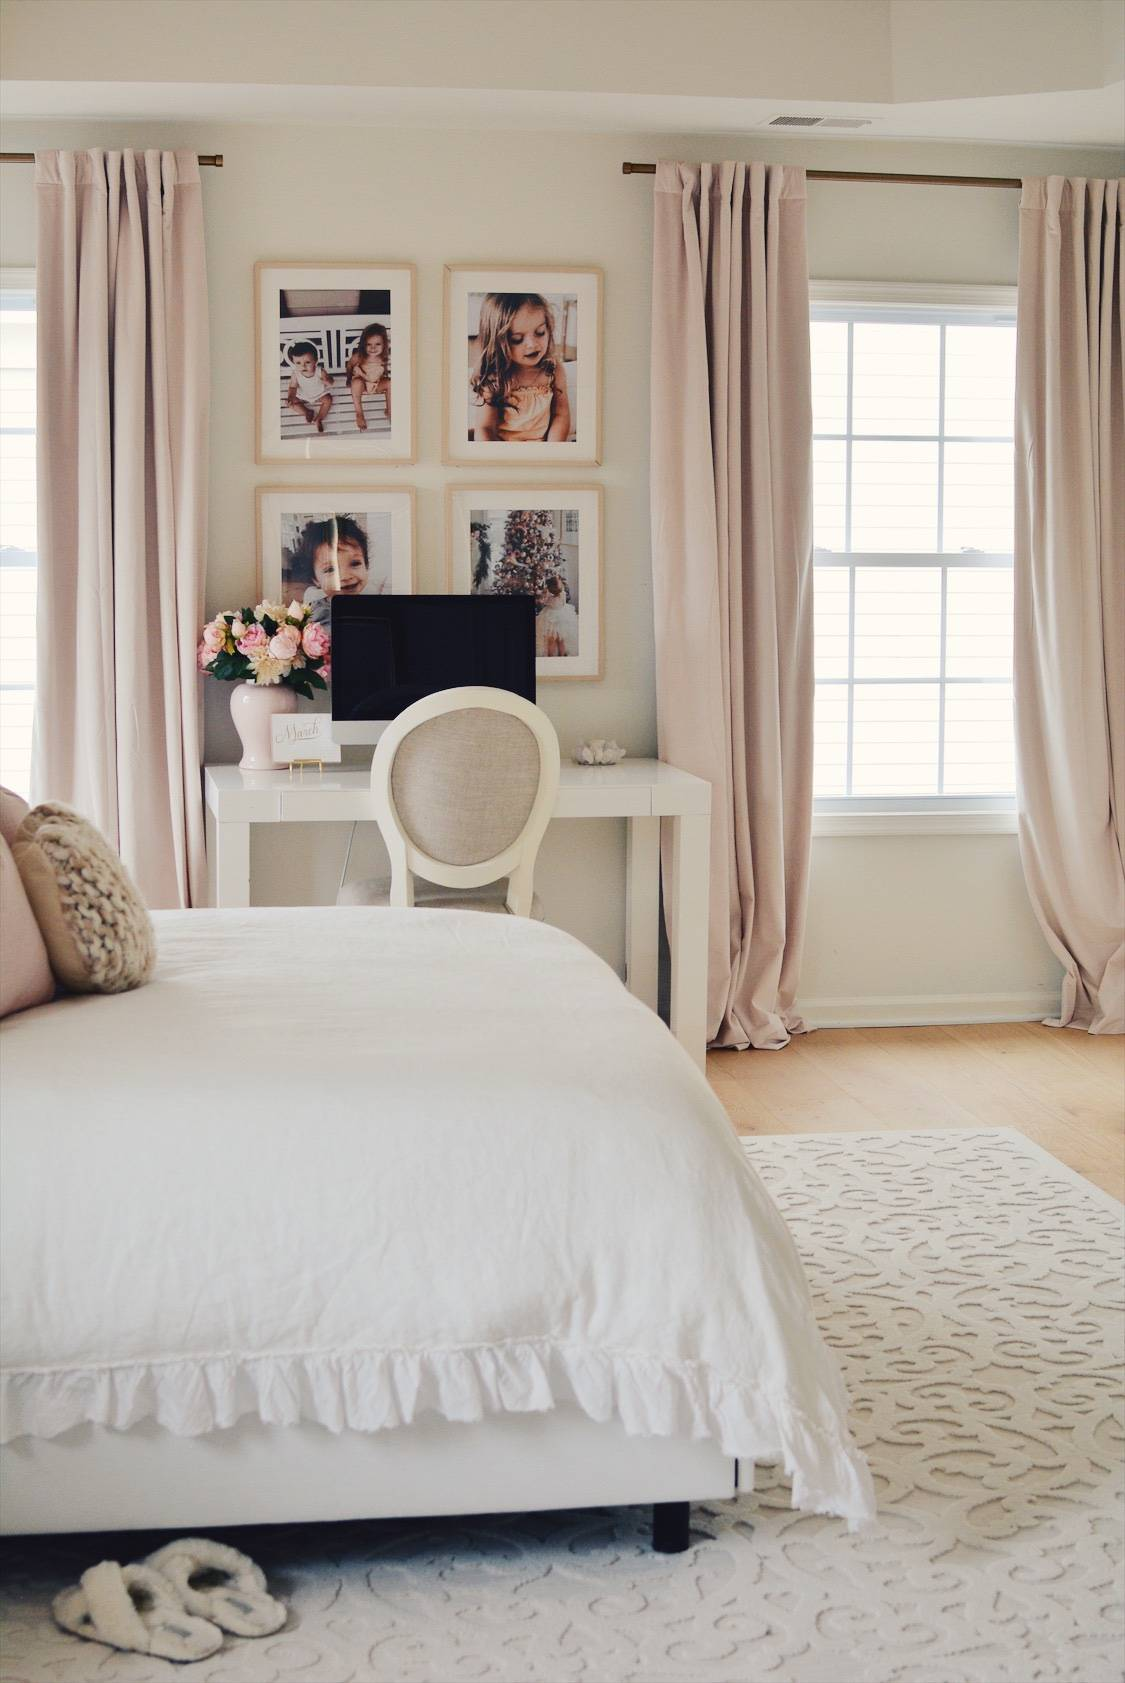 Ikea Hovsta Frames: Creating a Family Gallery Wall - The Pink Dream